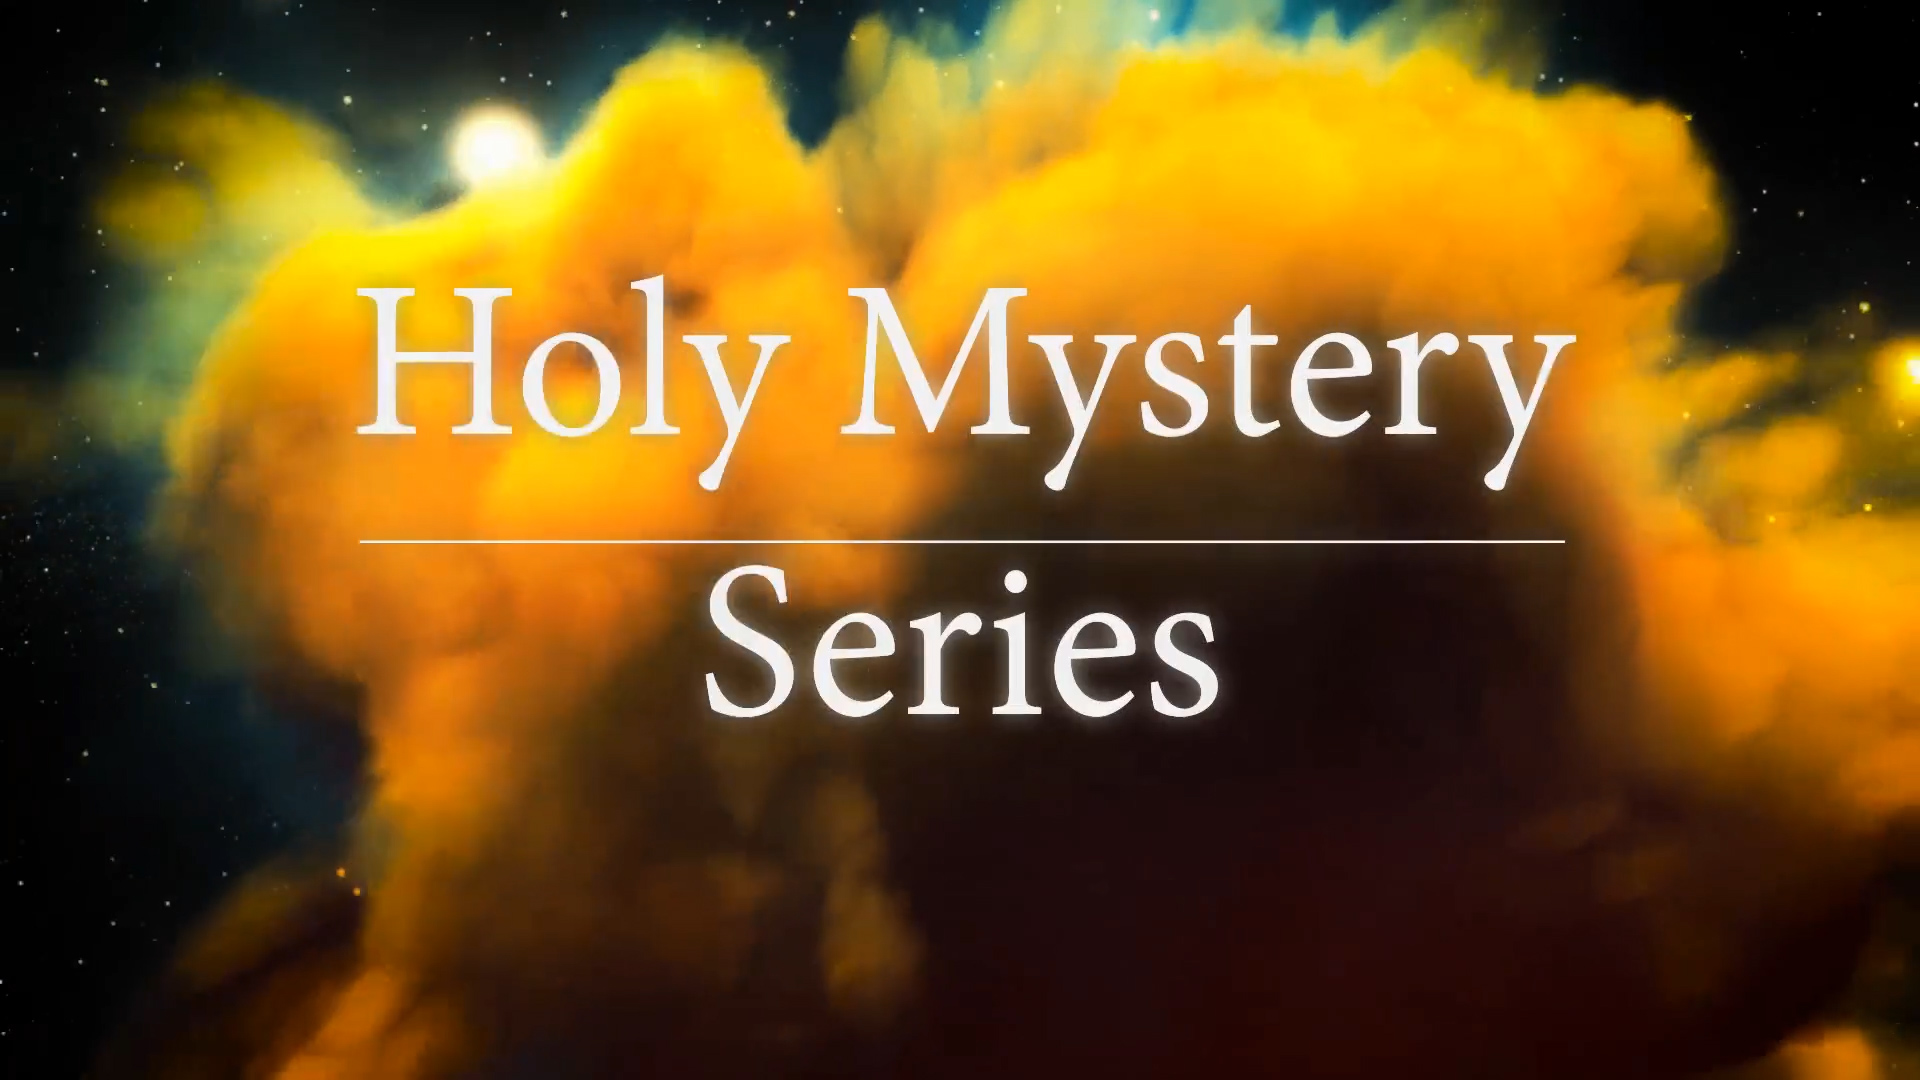 Holy Mystery - Reflections on the Universe Story & Ecological Spirituality